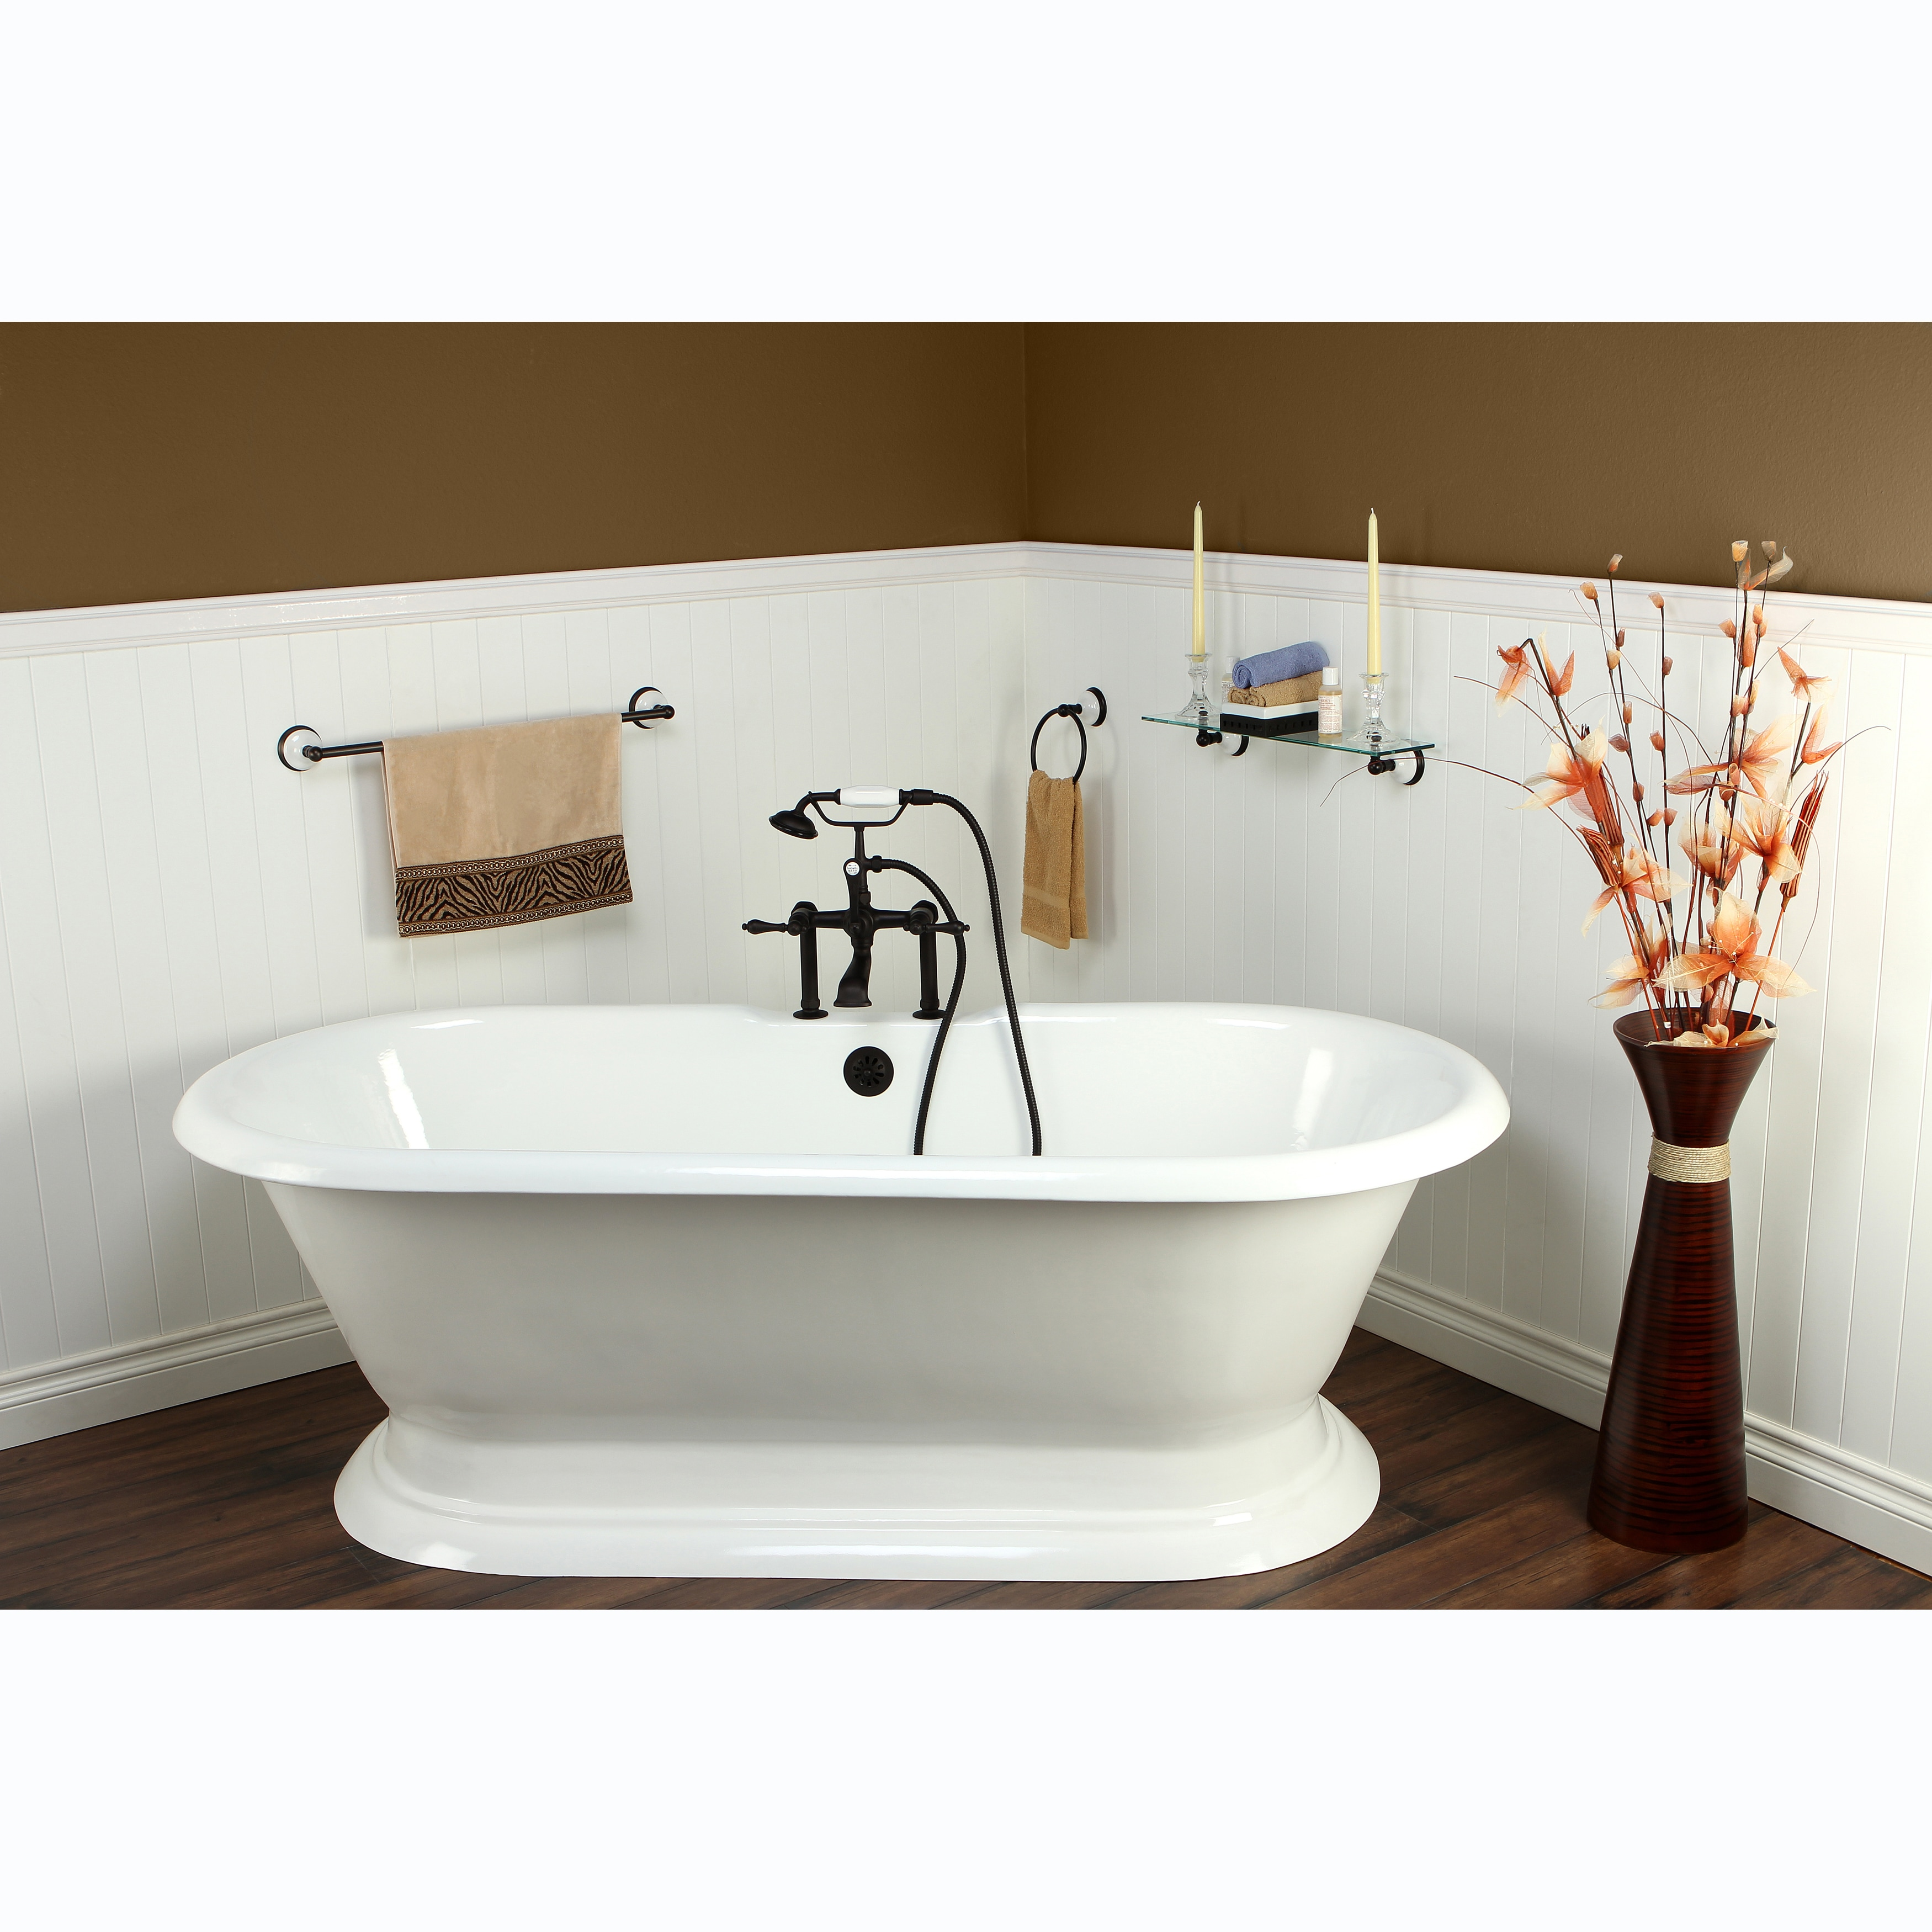 Shop Double-ended Cast Iron 72-inch Pedestal Bathtub with 7-inch ...